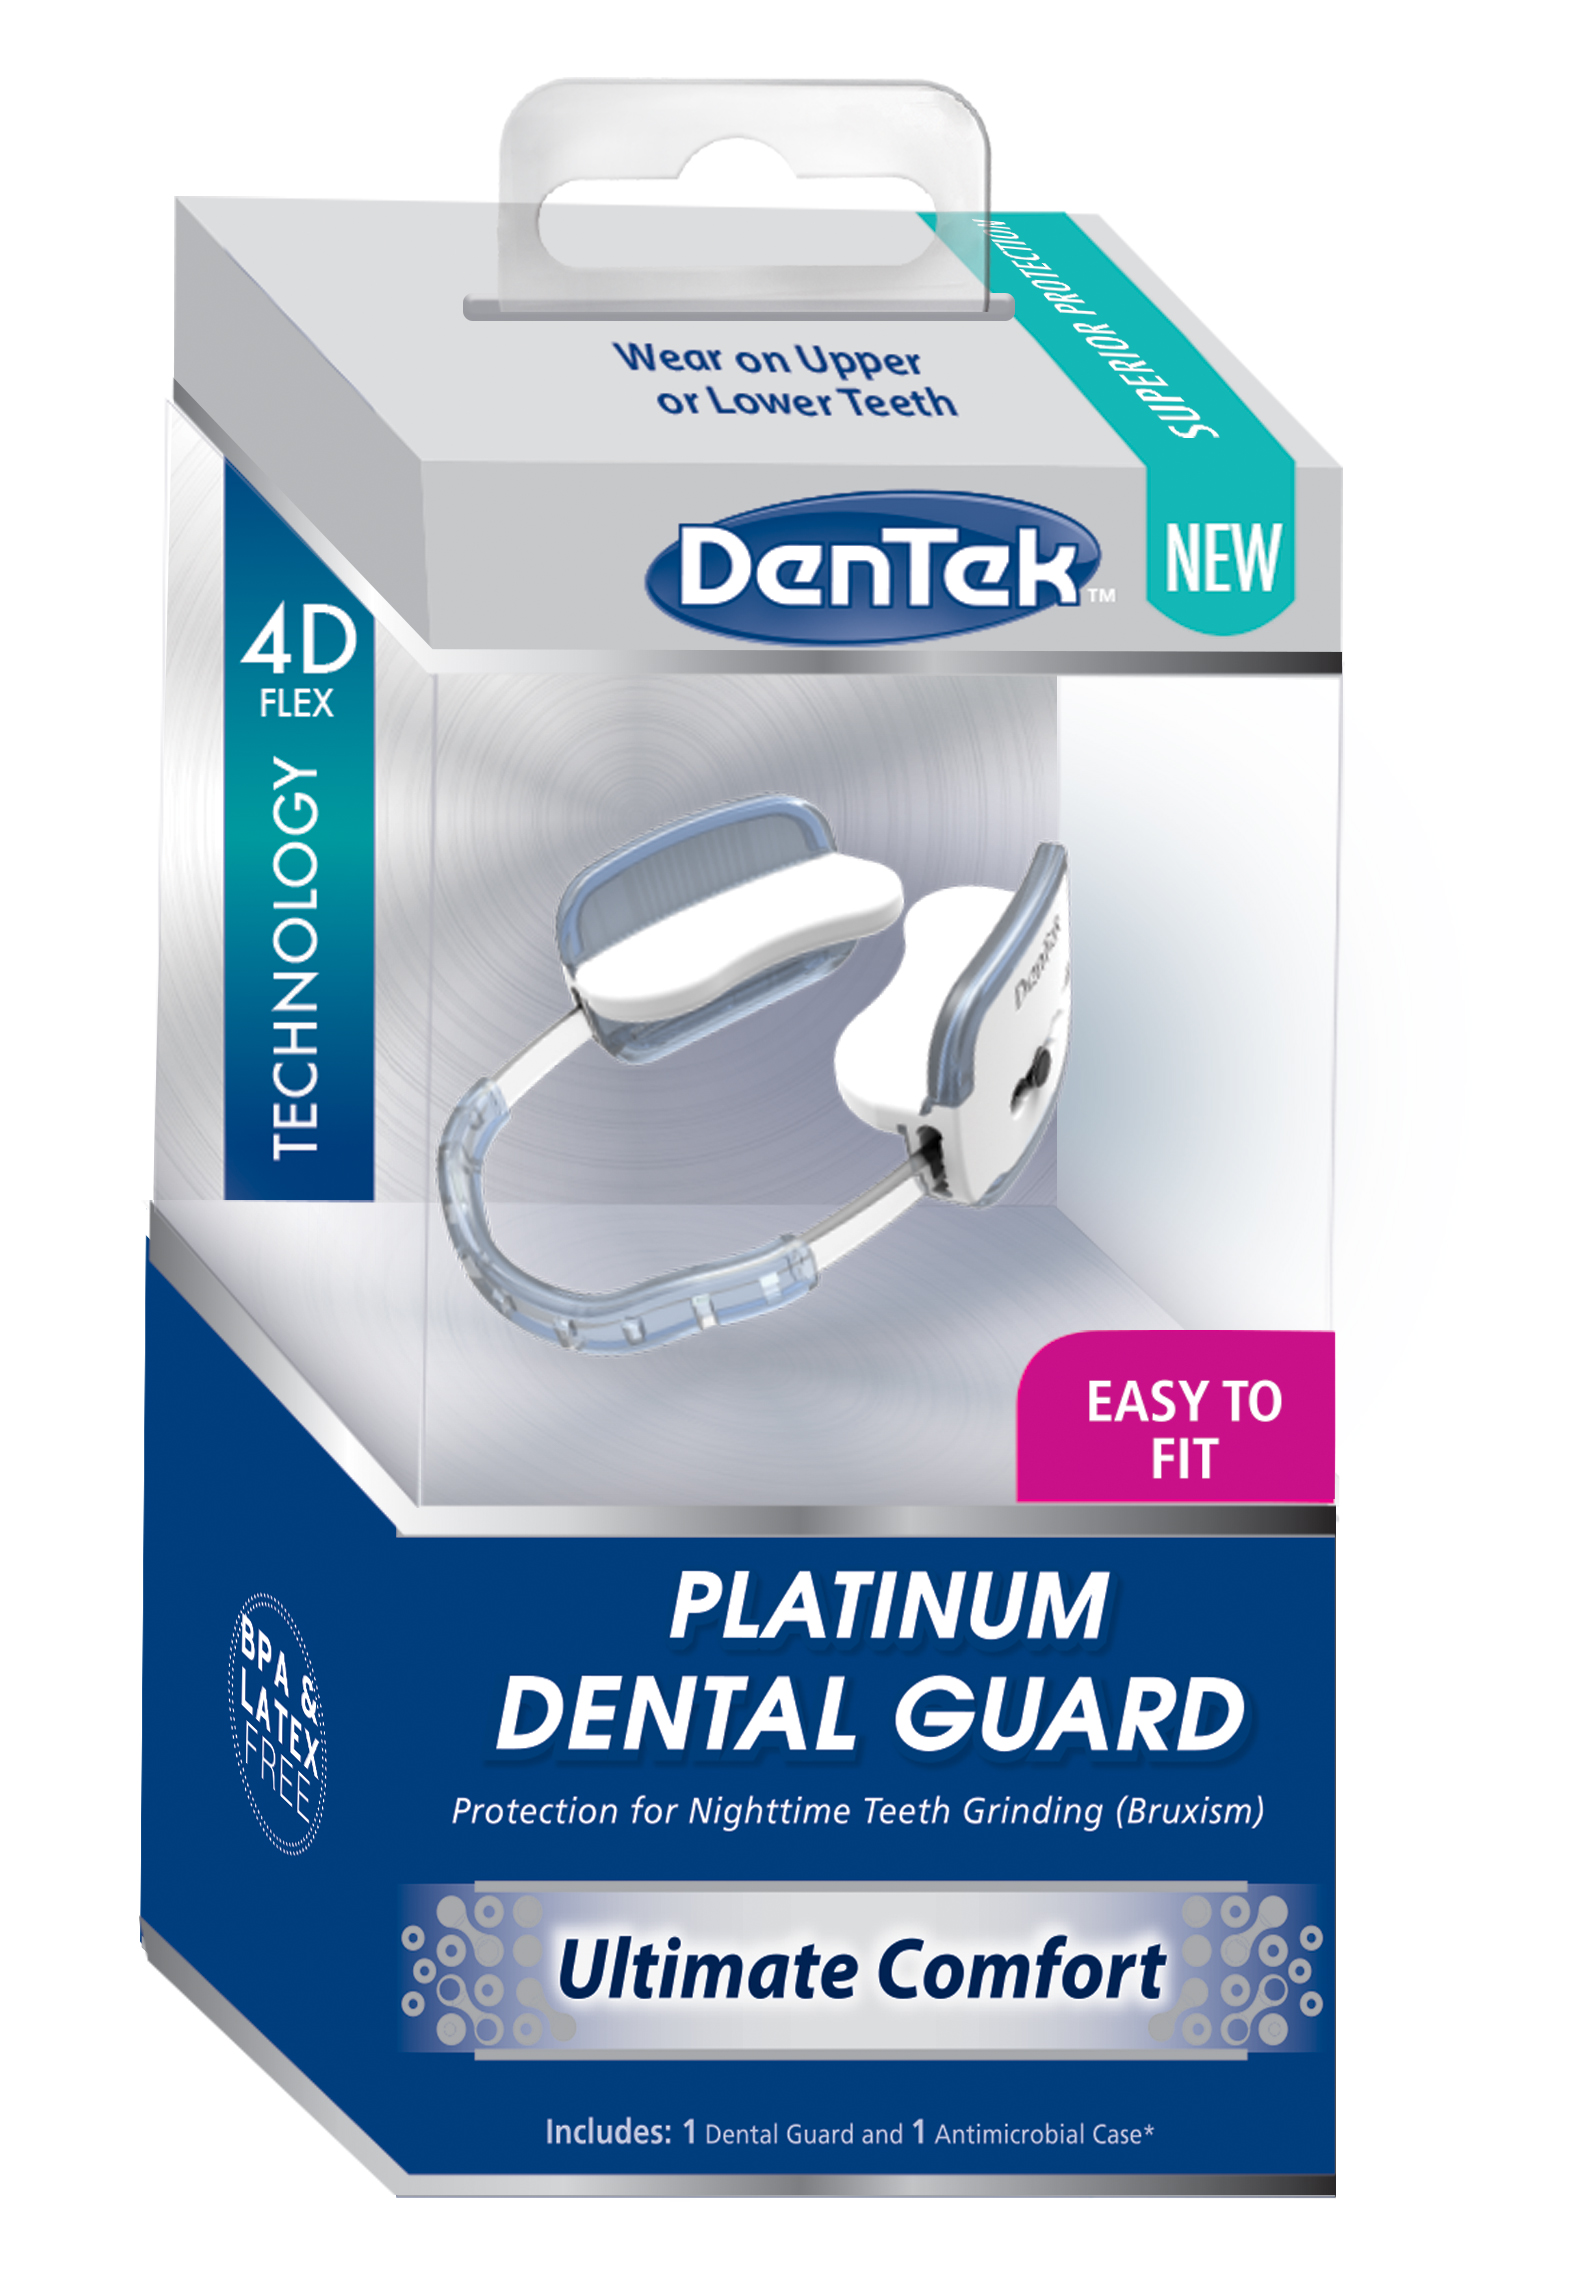 Platinum Dental Guard.jpg